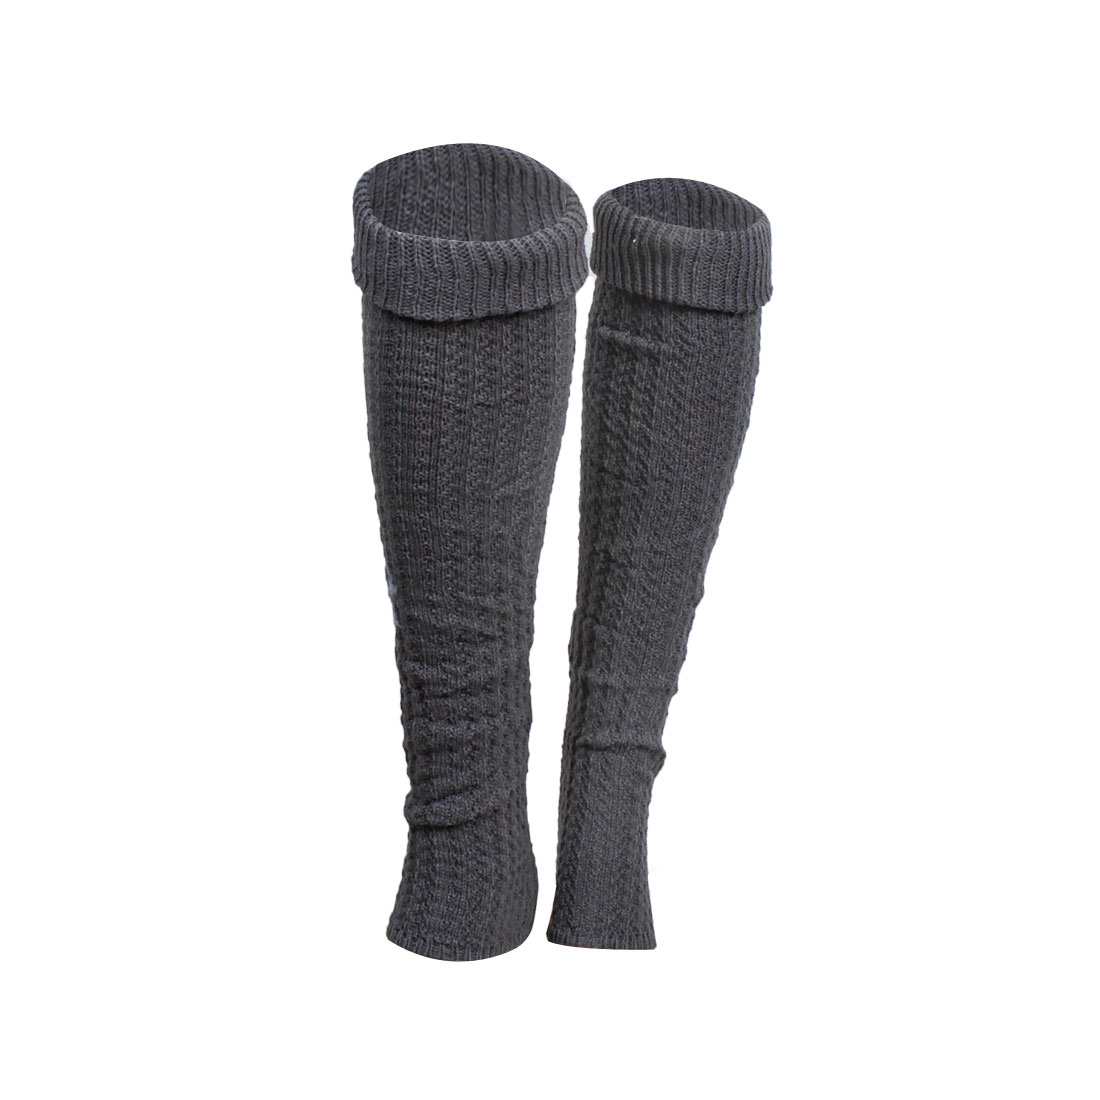 2x Grey Toeless Knee High Warm Leg Warmers Stocking for Lady